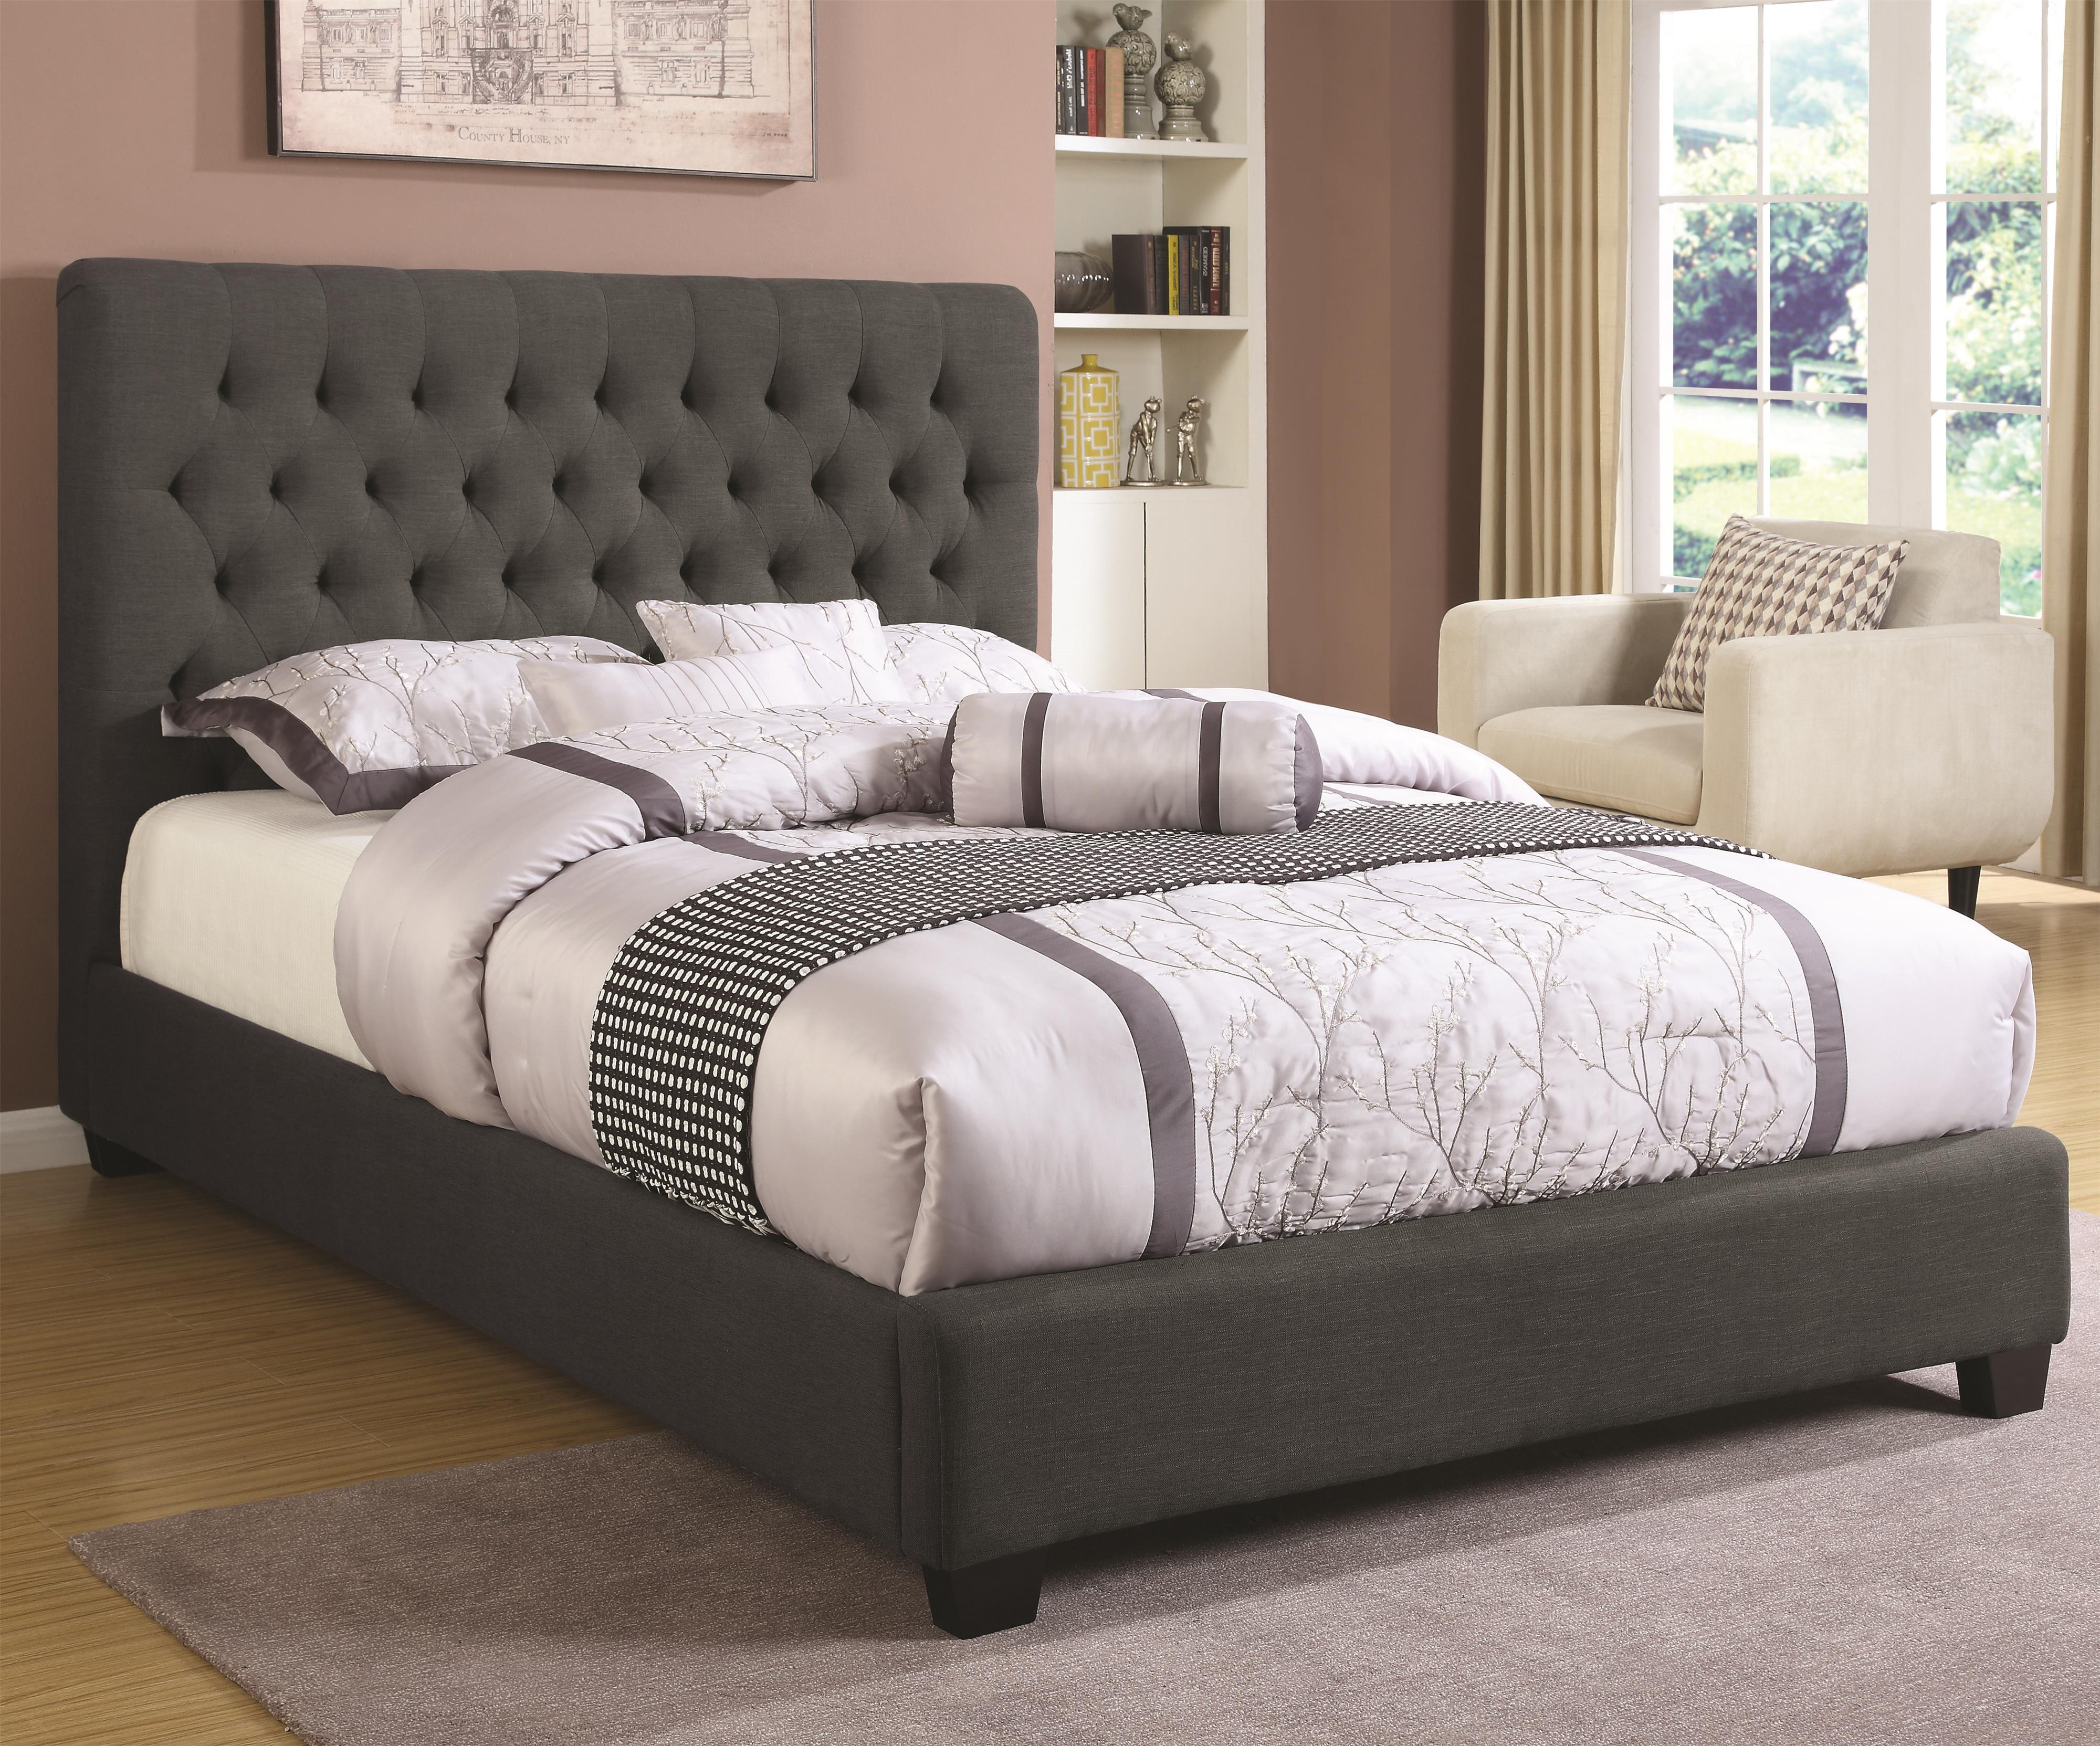 Upholstered Beds Queen Chloe Upholstered Bed by Coaster at Northeast Factory Direct